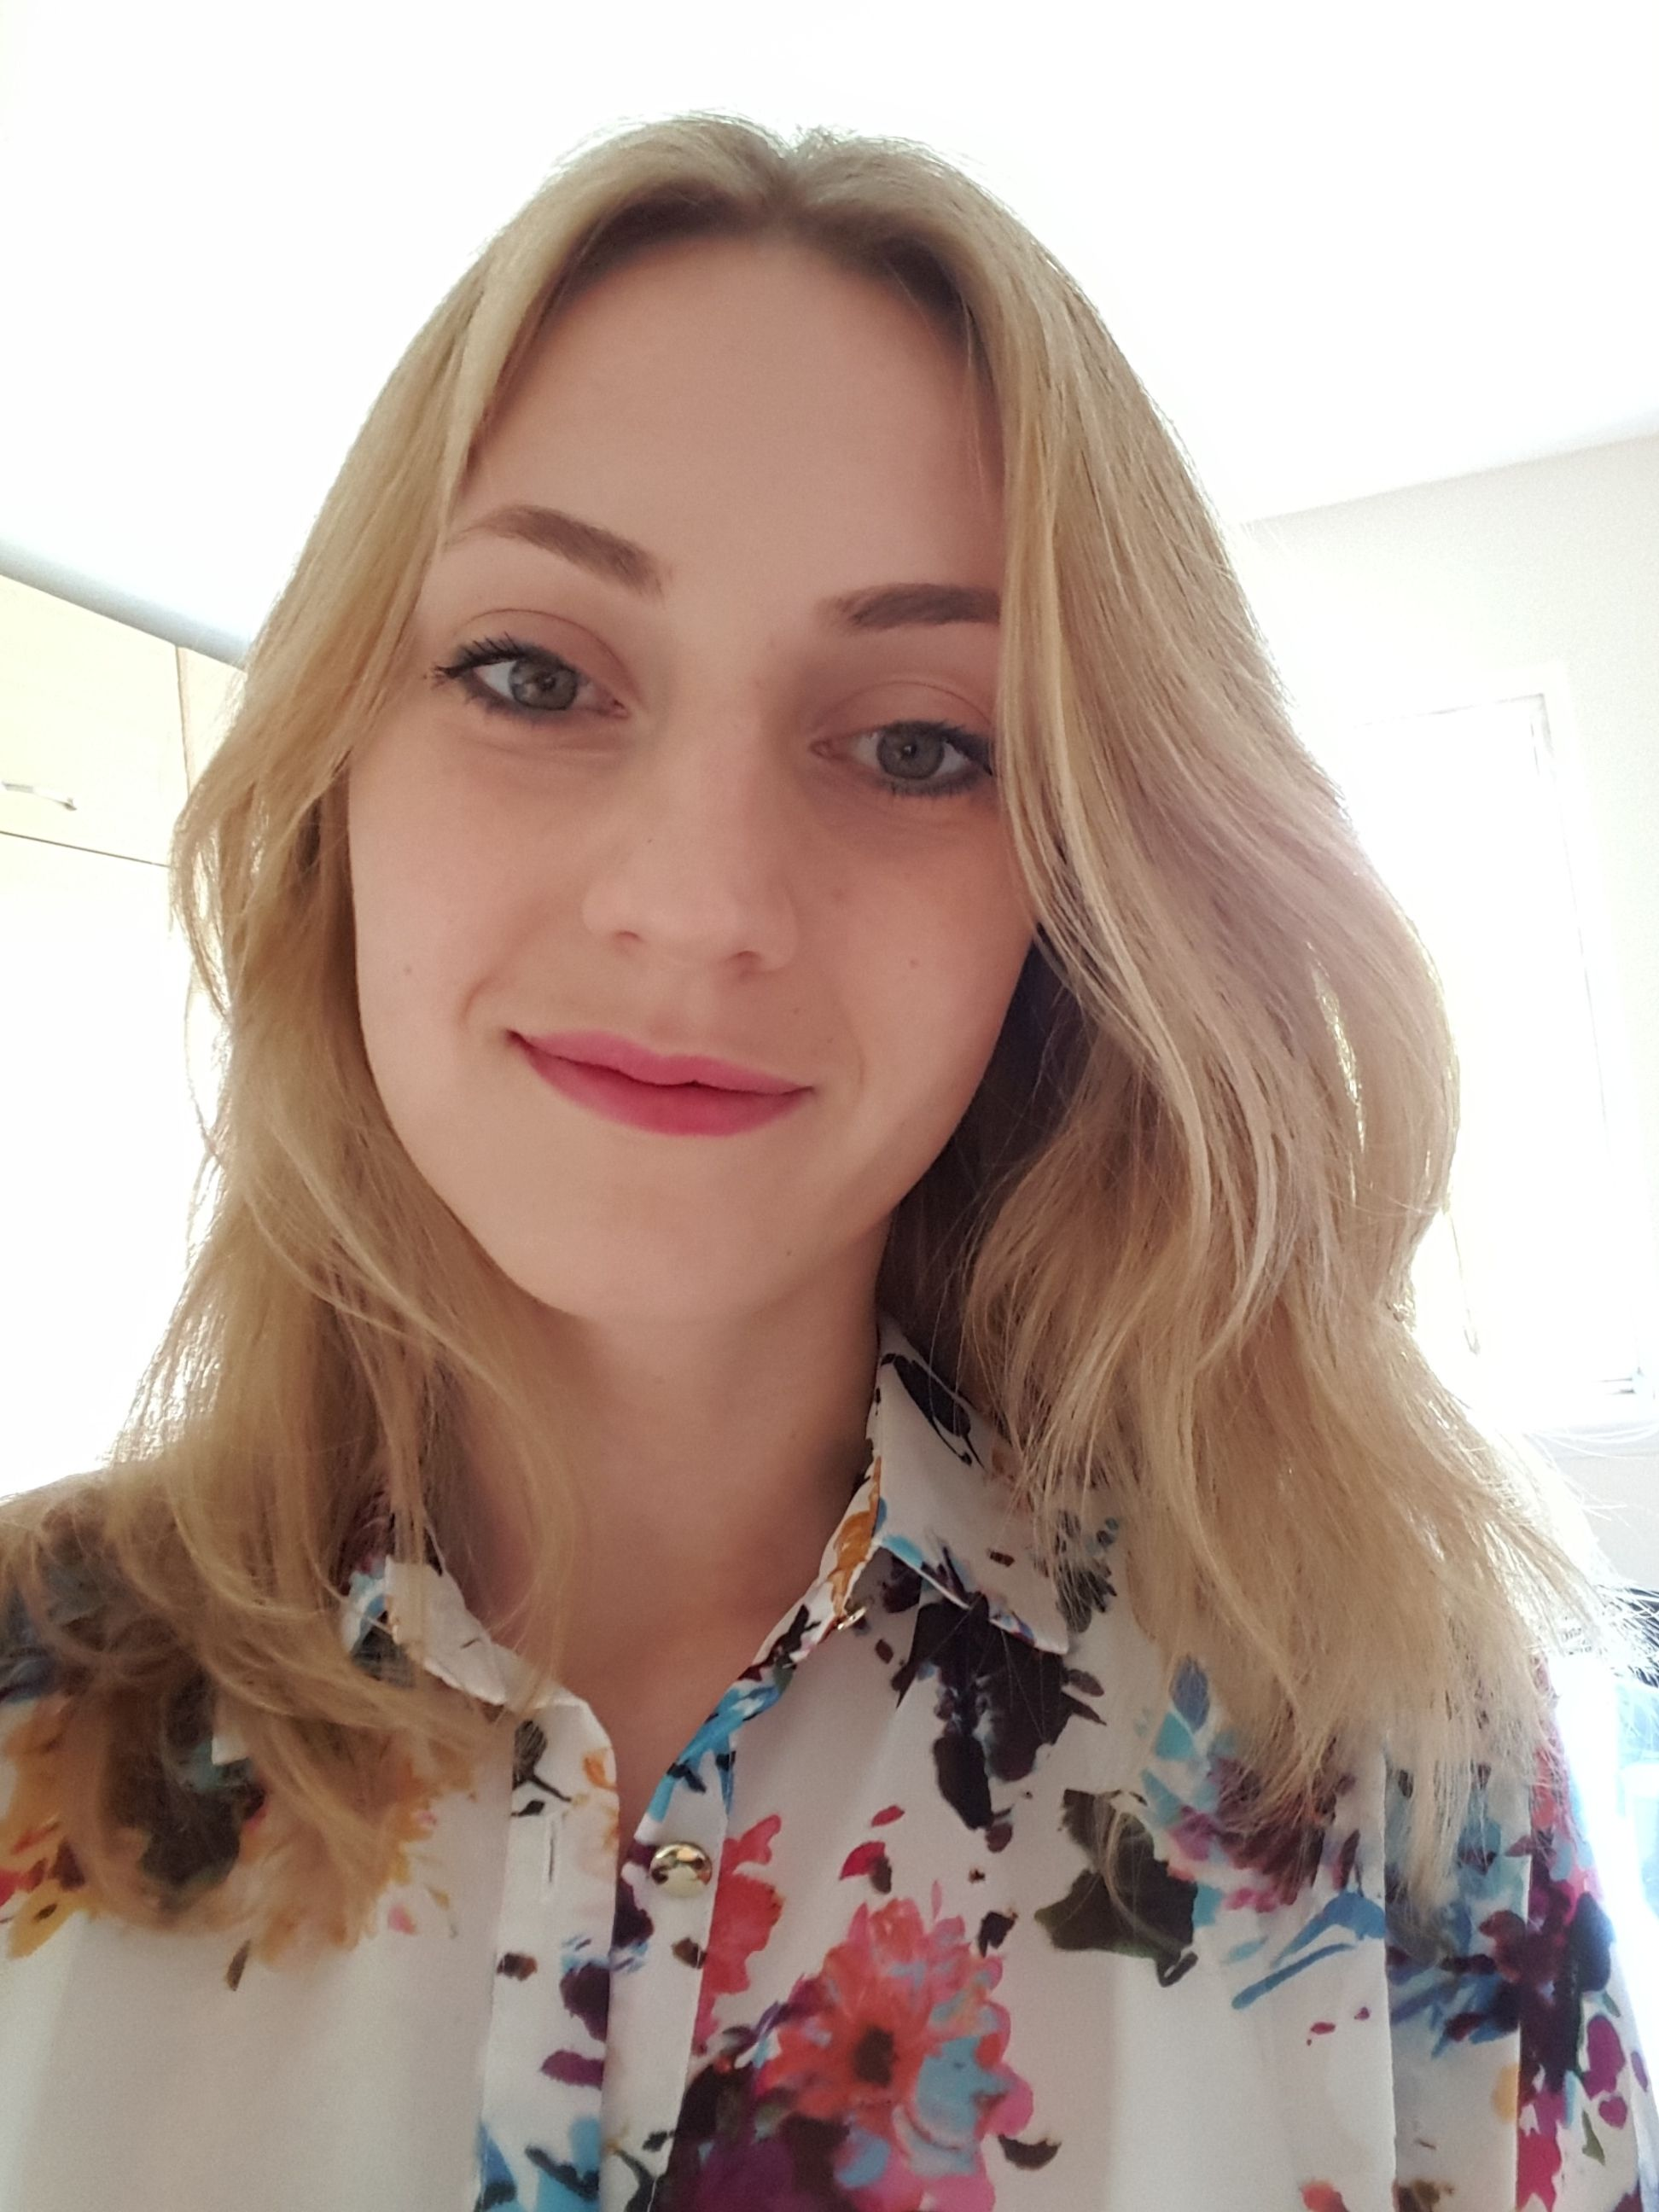 new glasgow catholic girl personals Browse profiles of member members here at polish personals that are associated with catholic  i am an outgoing person who enjoys meeting new  male glasgow.